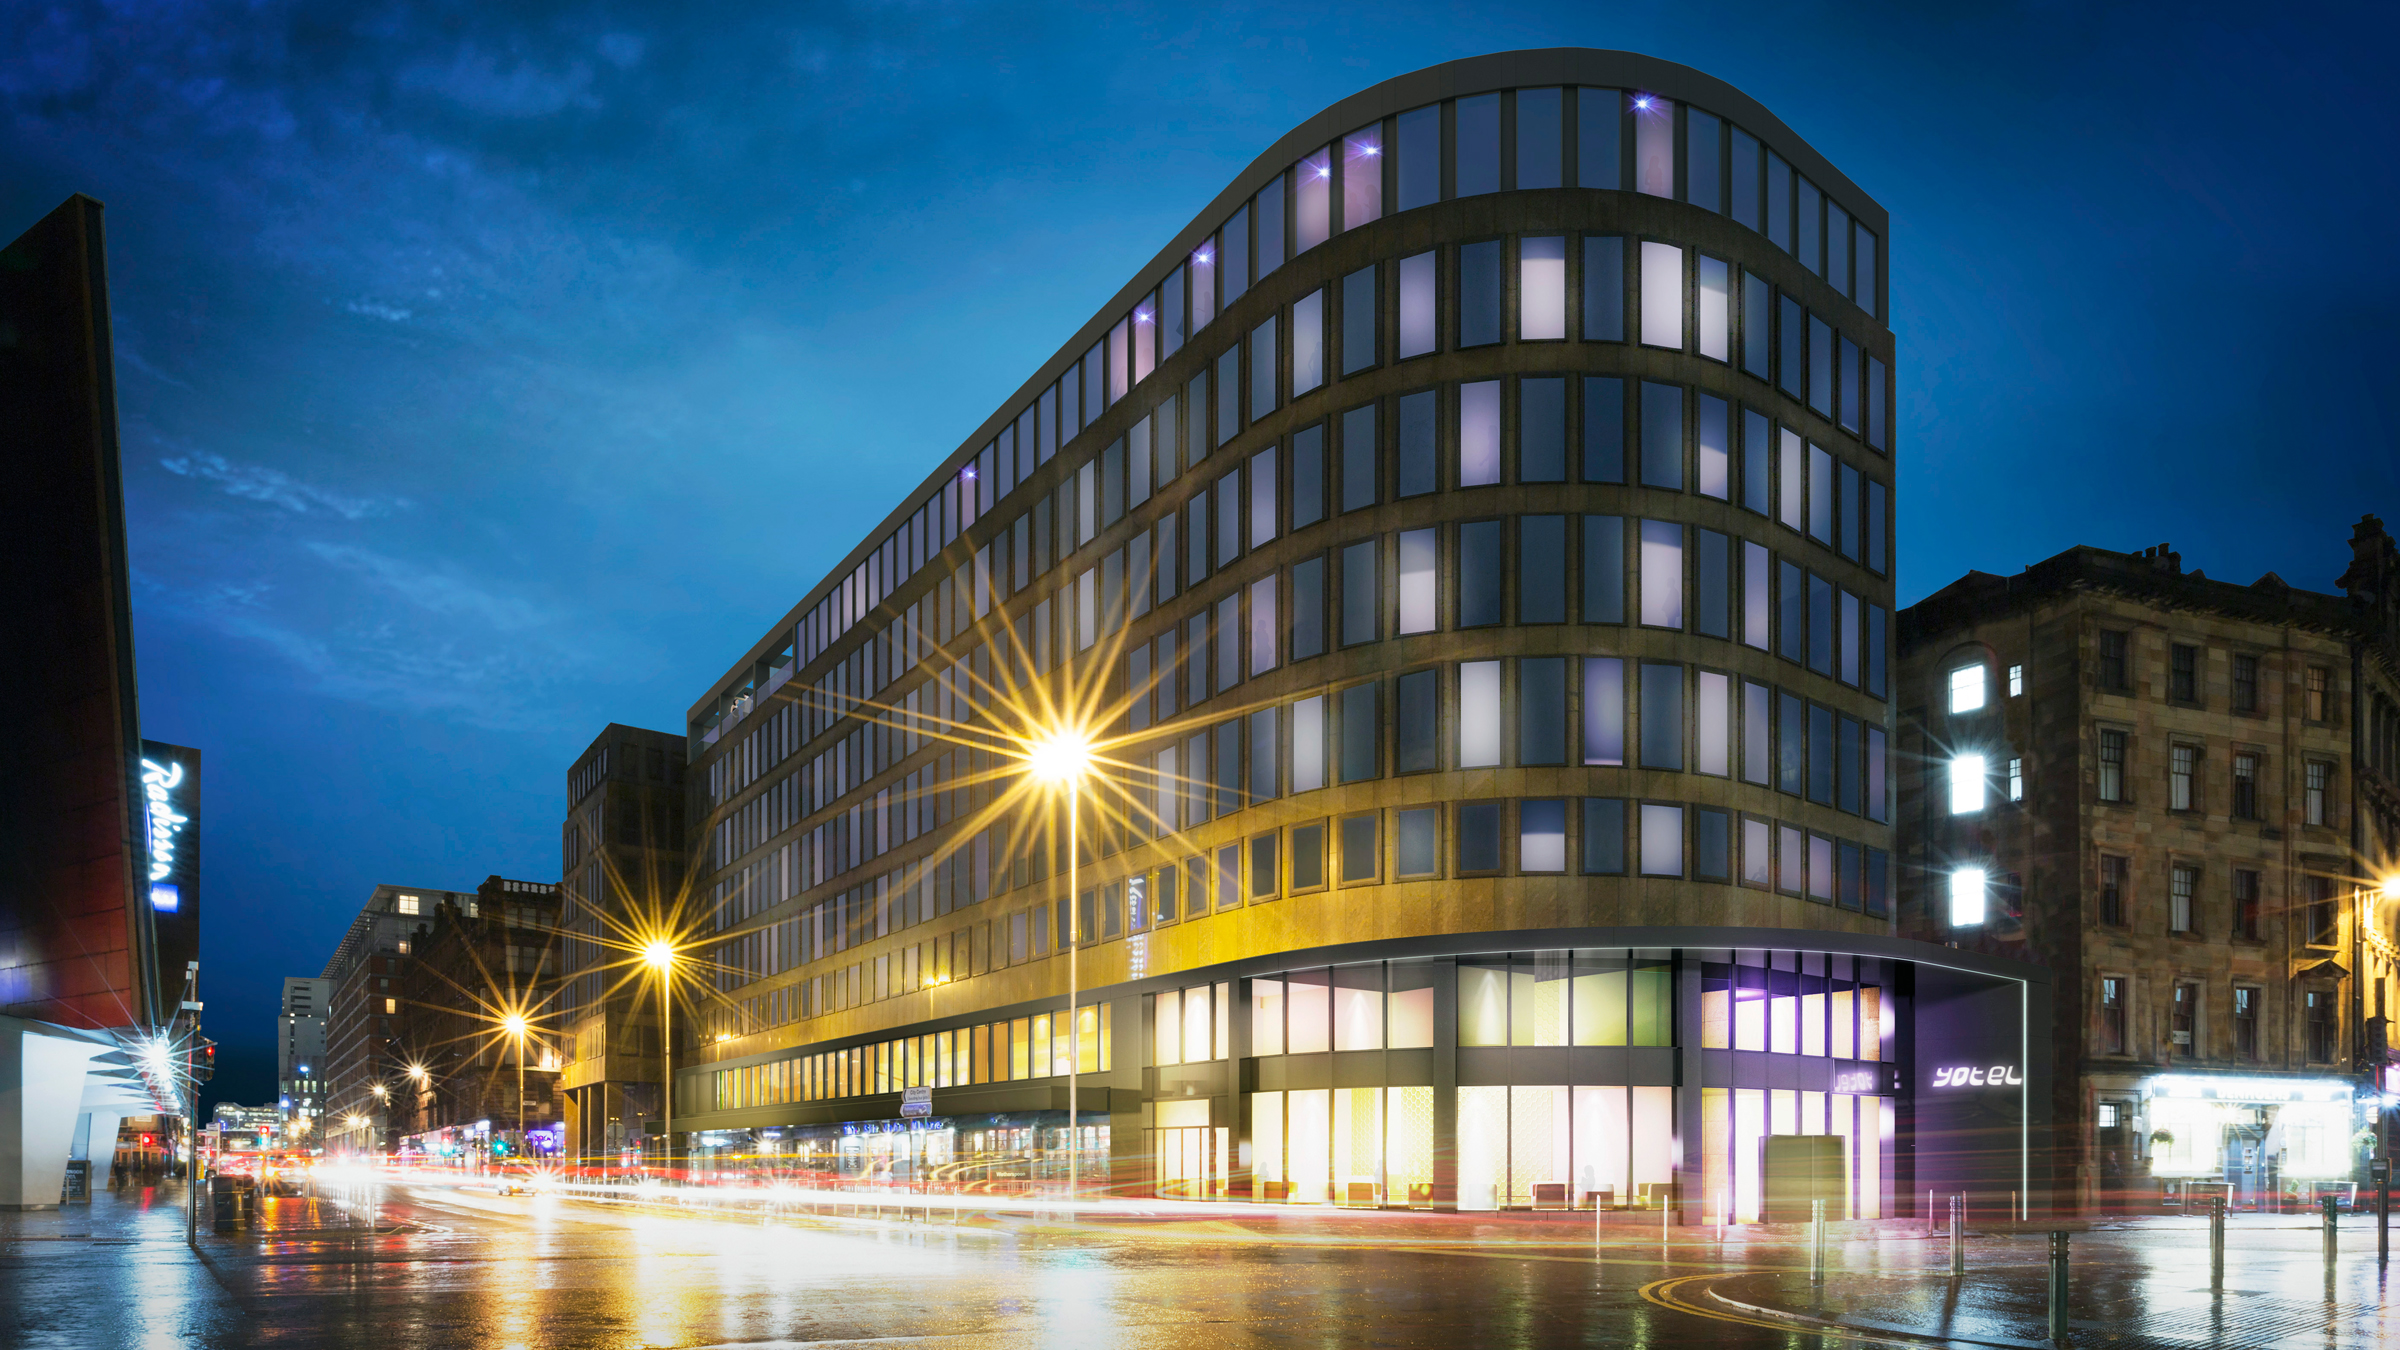 Yotel Lands in Glasgow with new Hotel featuring Rooftop Bar and Bowling Aley